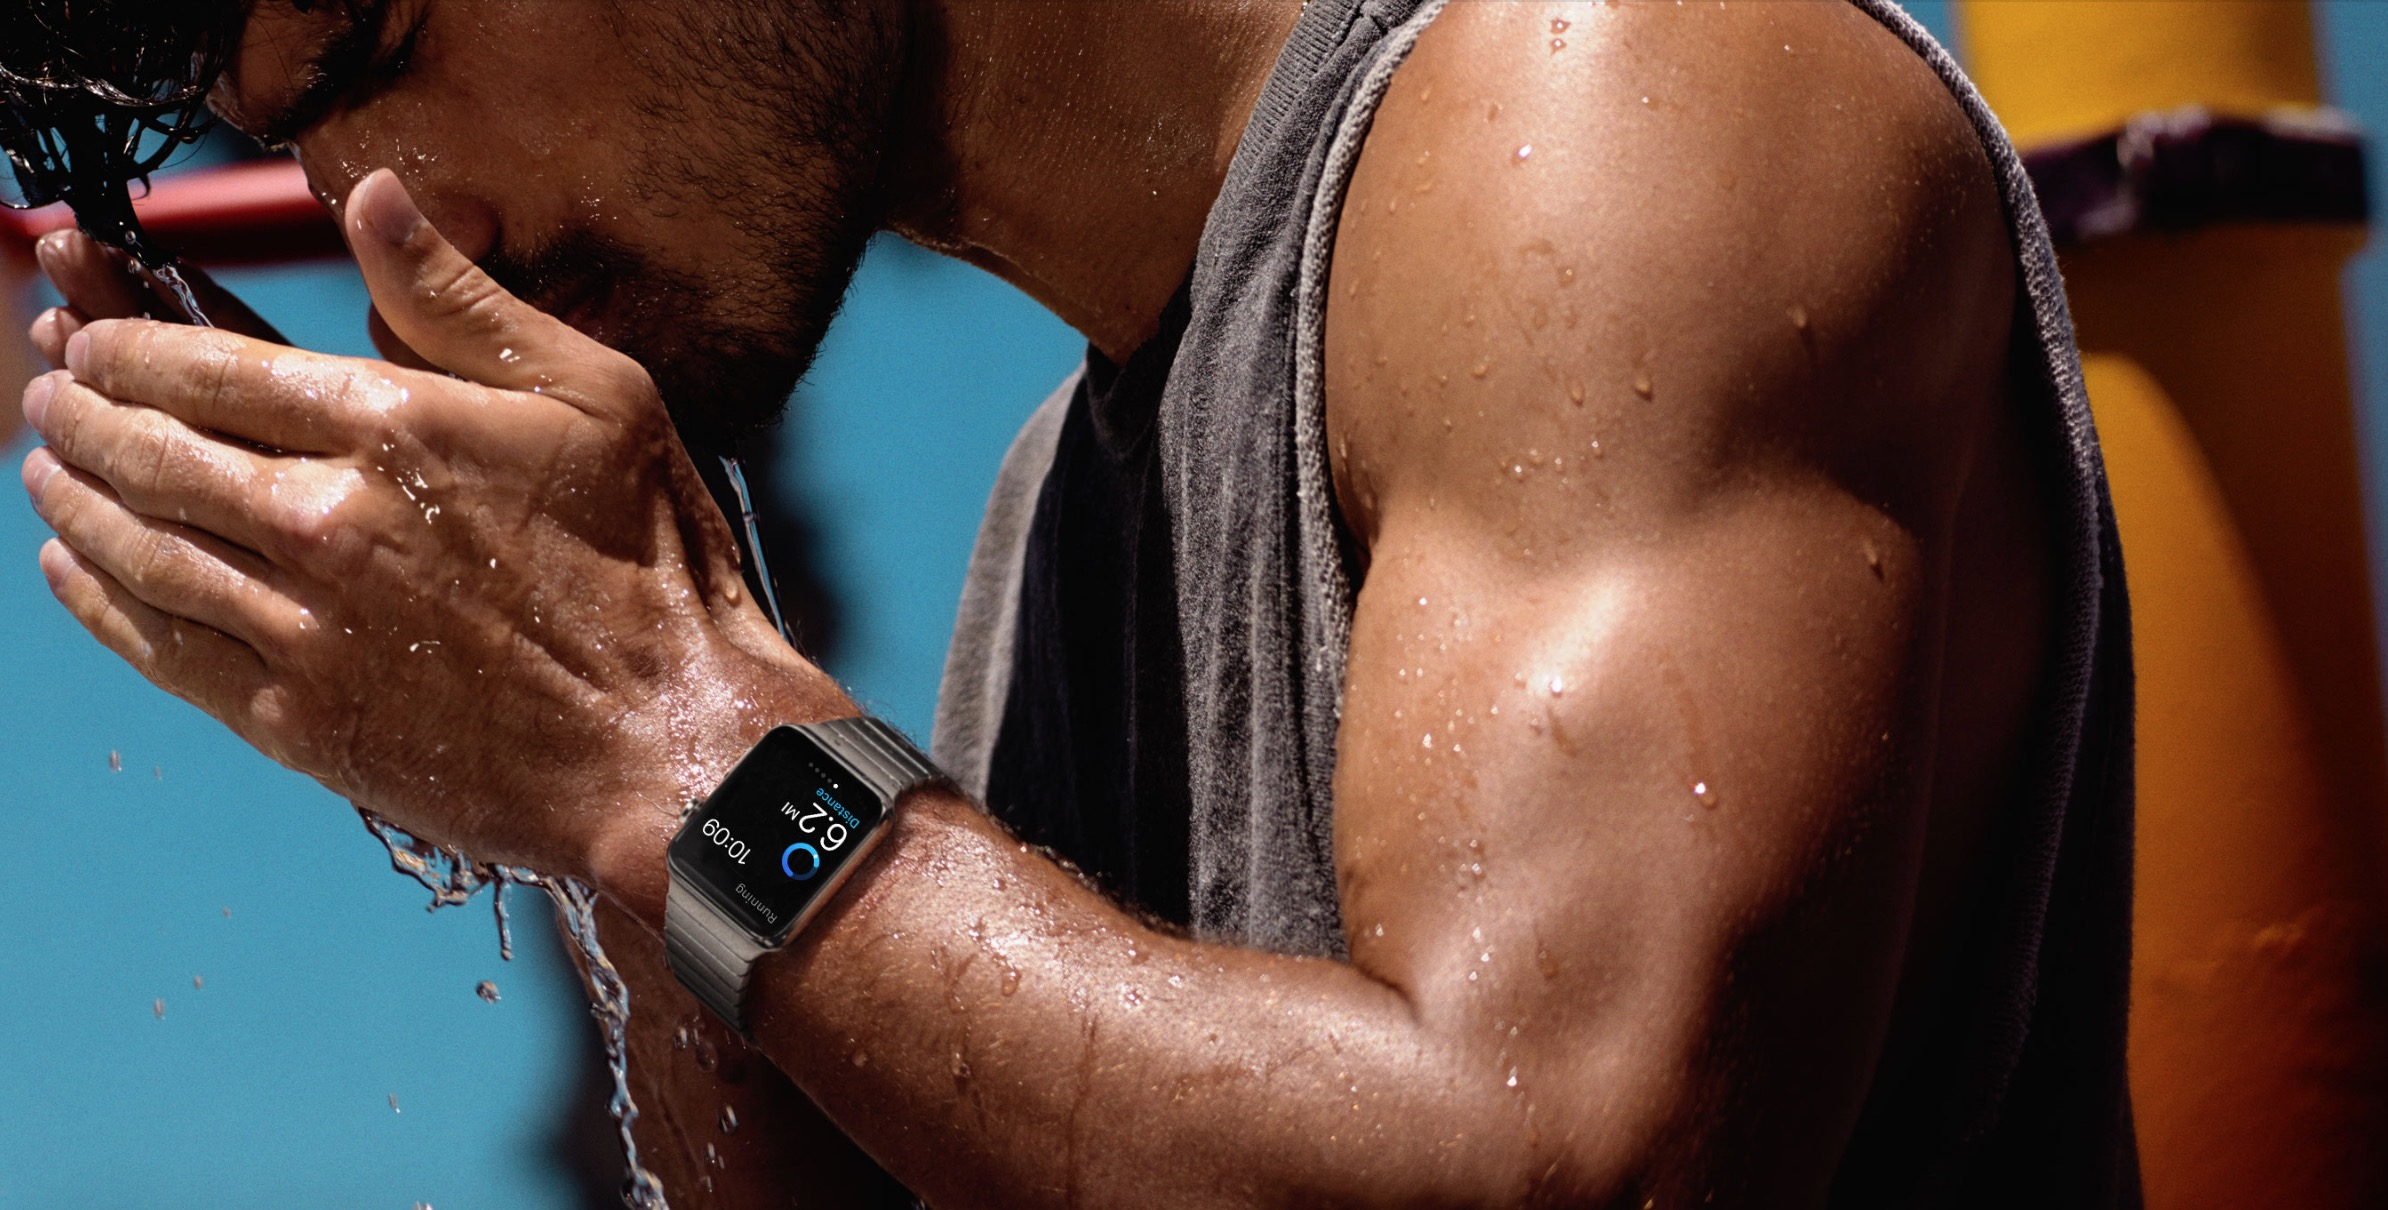 WSJ: The Apple Watch can track glucose levels